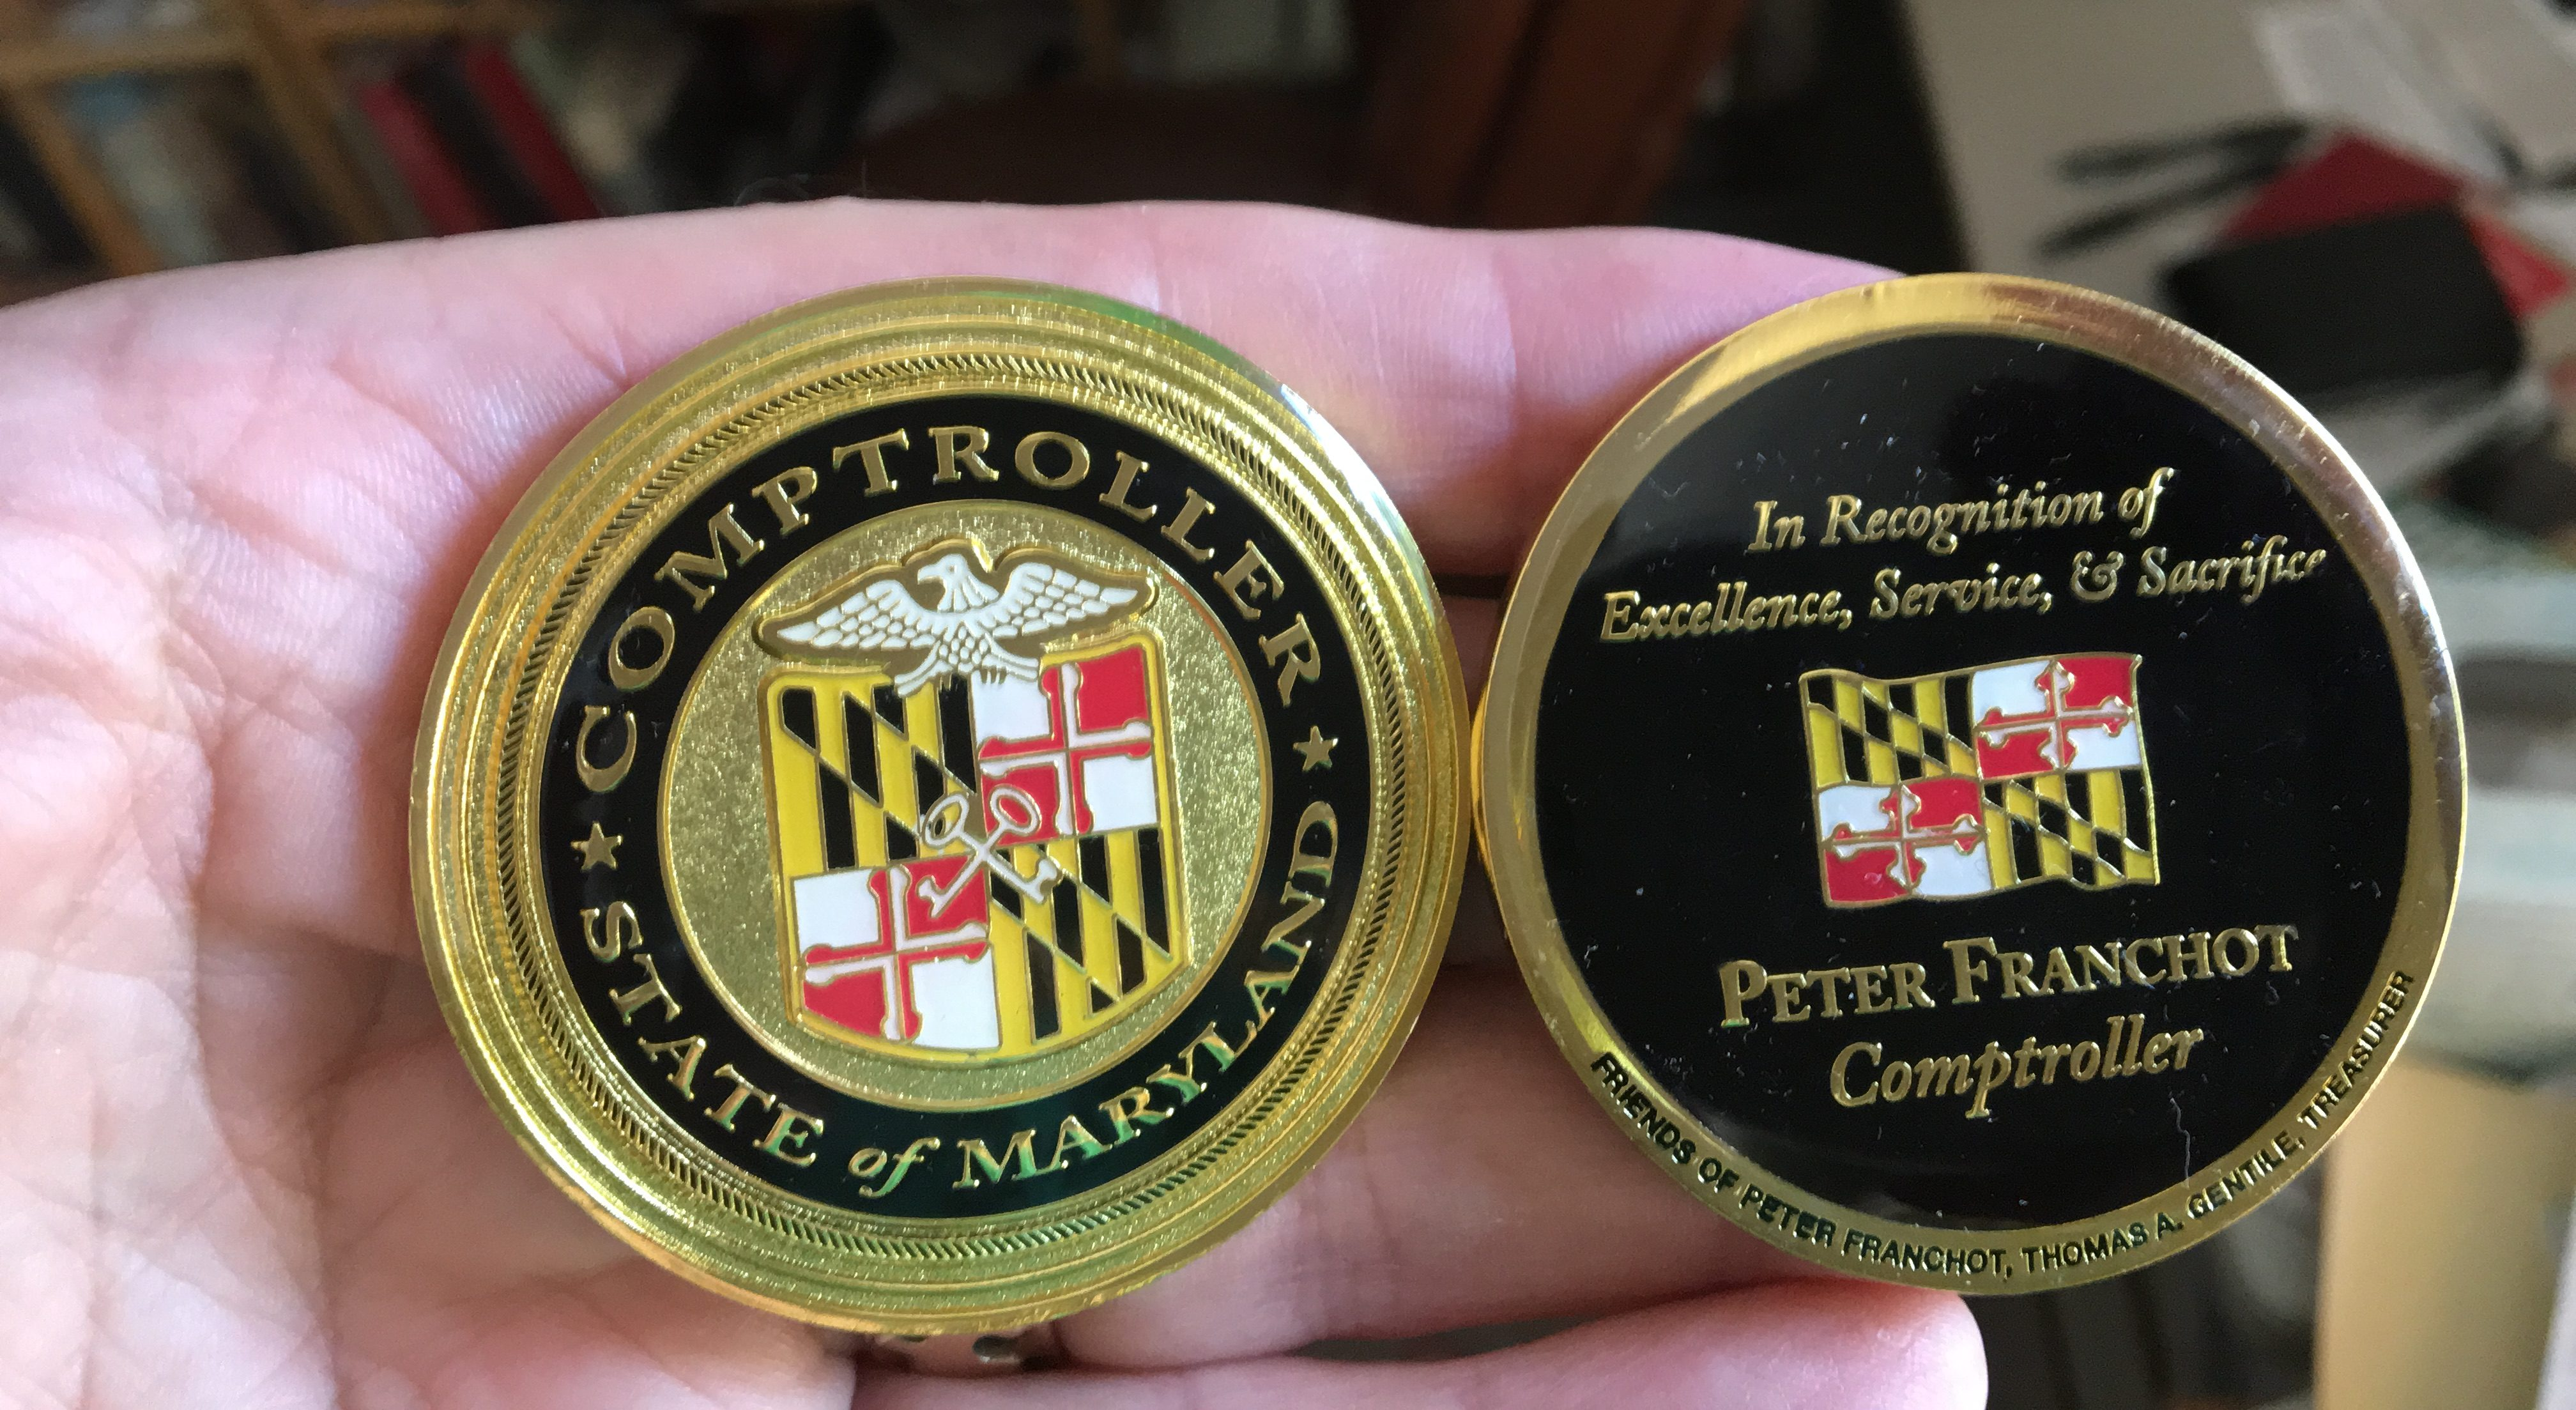 Franchot opponent claims ethics violation over comptroller coins